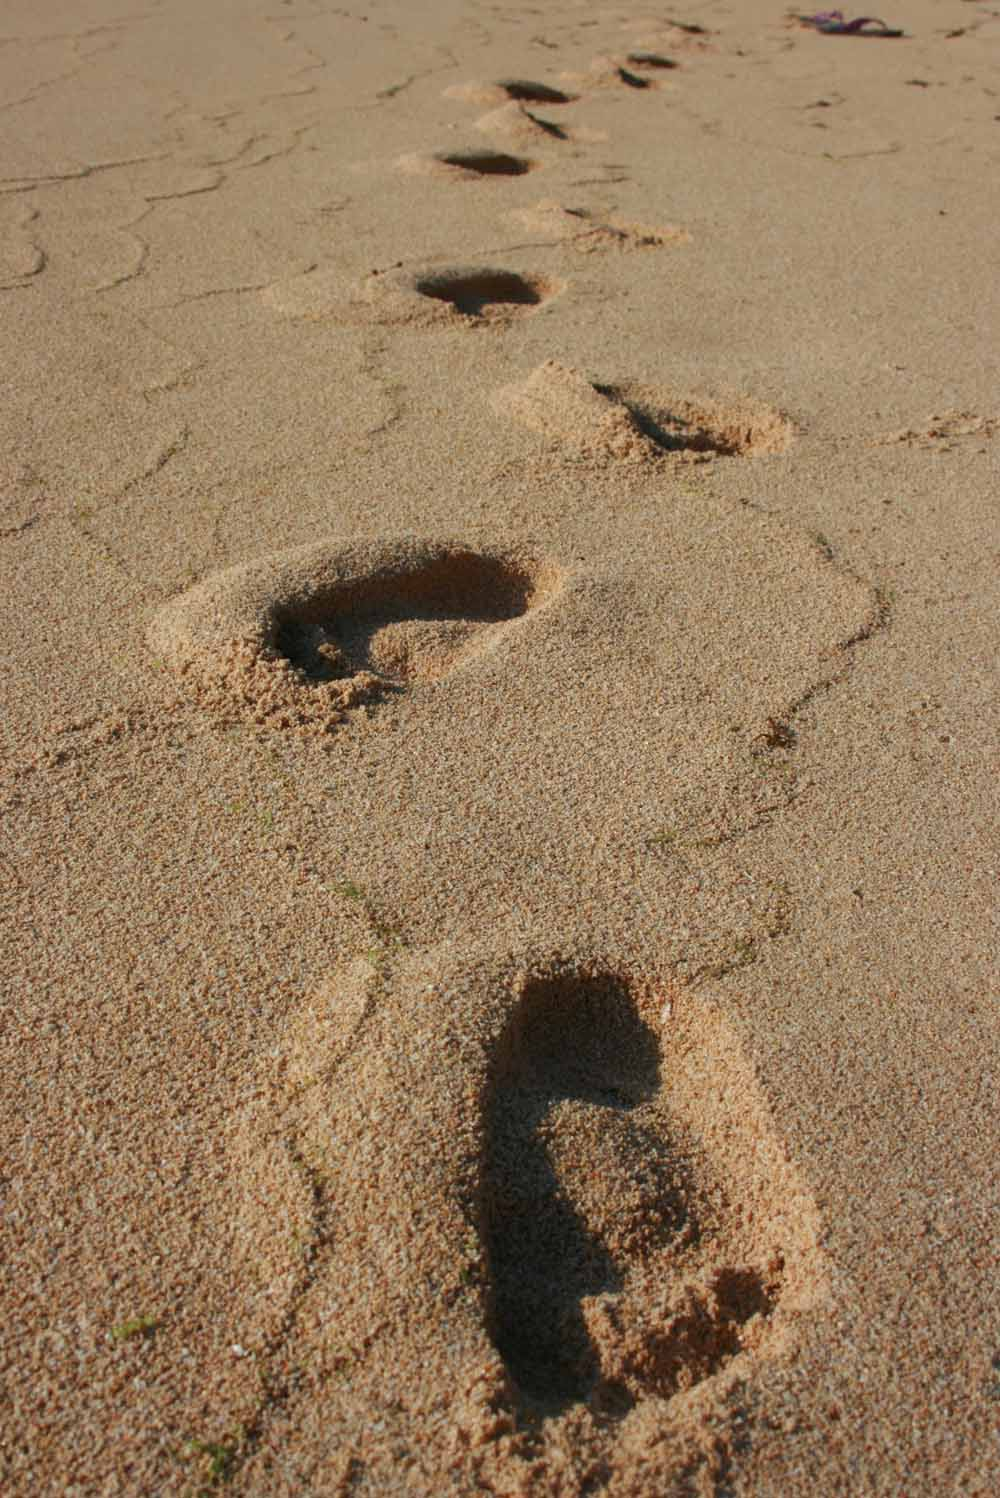 Only one set of footprints